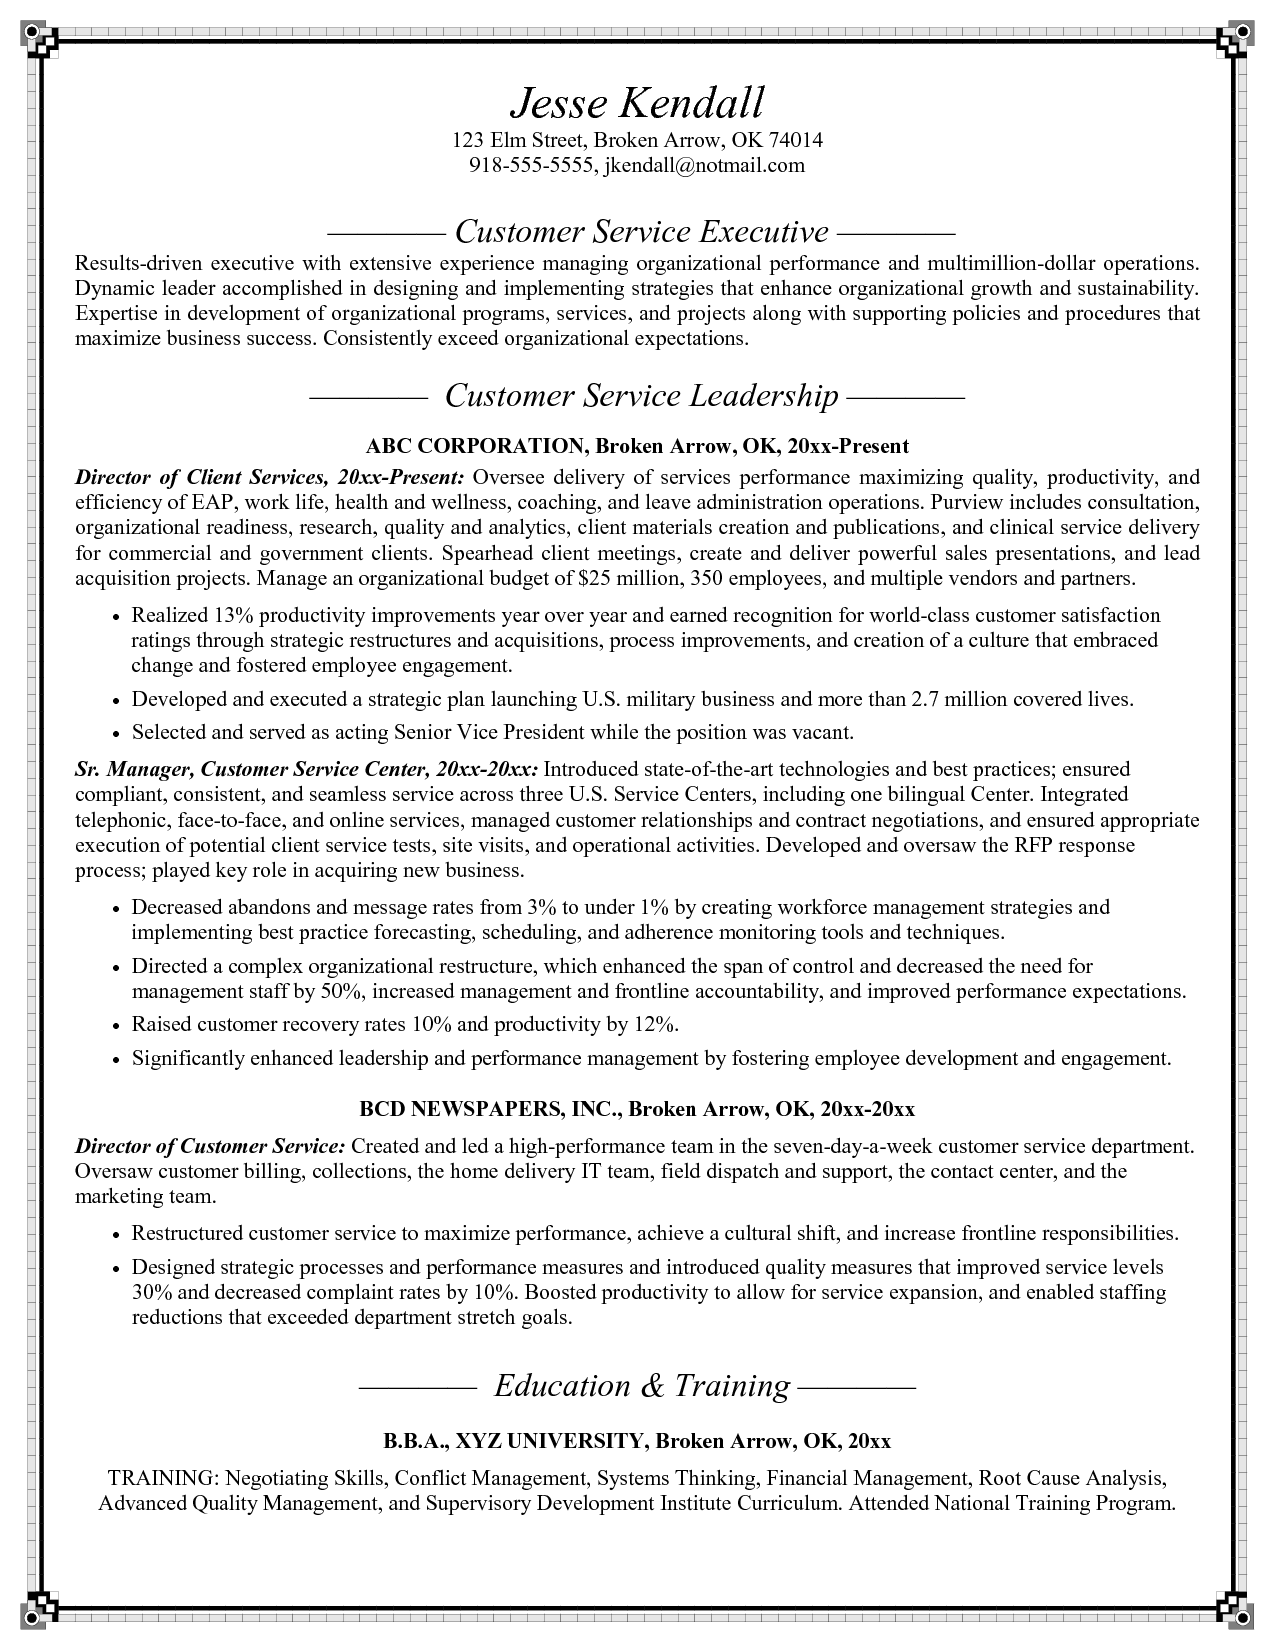 Resume Examples Skills Prepossessing Customer Service Resume Examples Skills Call Center Resume Design Inspiration